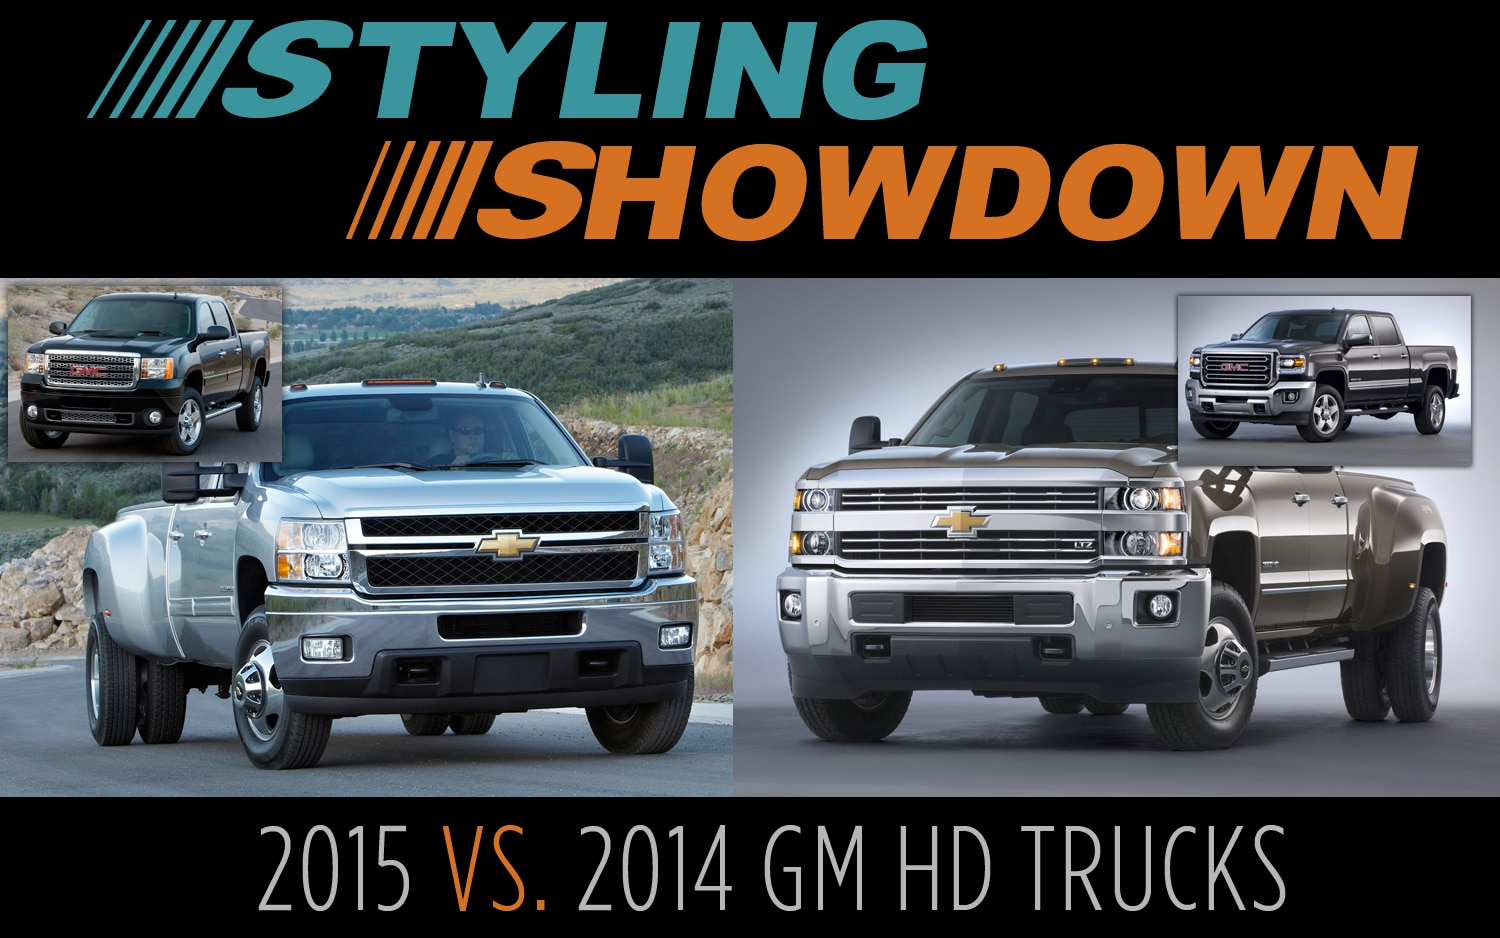 Styling Showdown: 2014 vs. 2015 Chevrolet Silverado/GMC Sierra HD